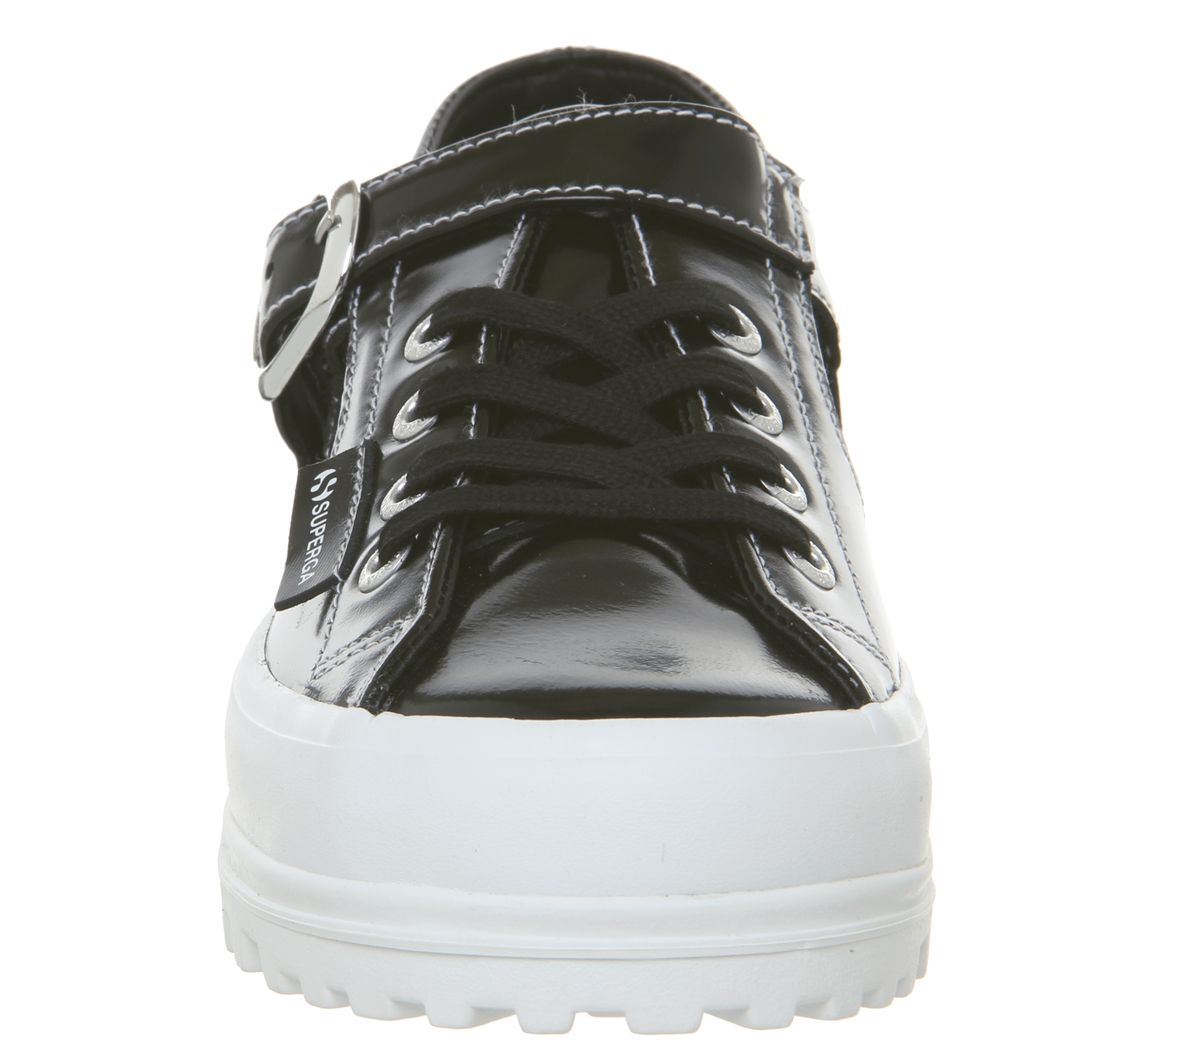 Womens Superga 2254 Trainers Alexa Chung Black Patent Trainers Shoes